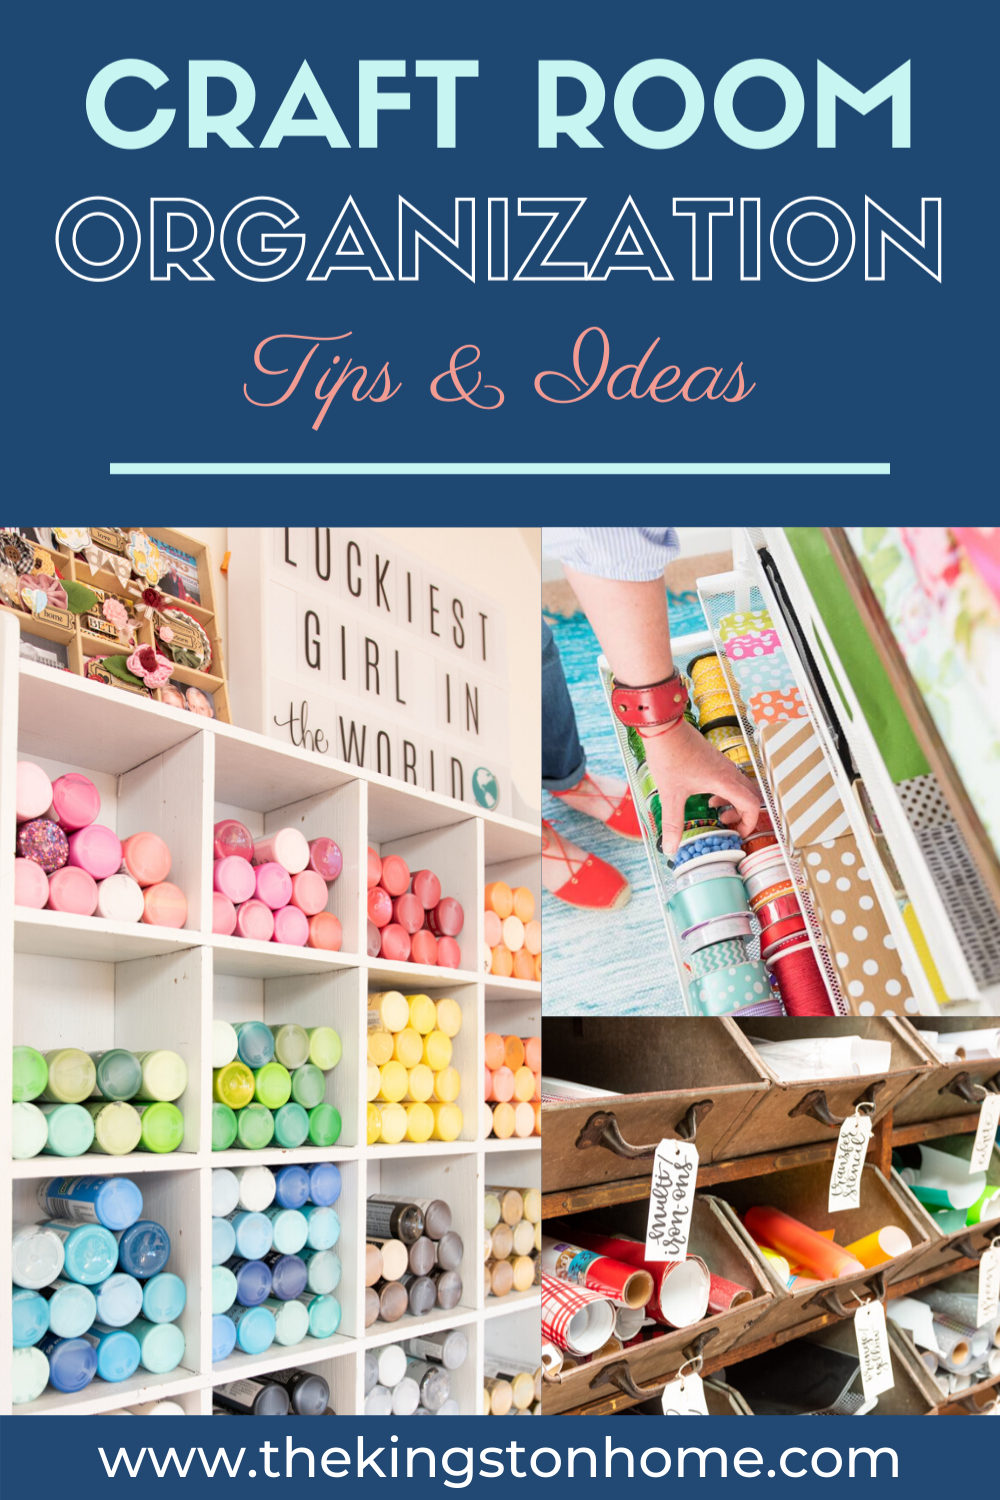 Join Me For My Craft Room Tour - The Kingston Home: Let's talk about craft room organization! Whether you've got a large room, a small closet or are crafting on your dining room table – I've joined with some of my favorite people to share our favorite storage and organization tips from our own craft rooms. via @craftykingstons